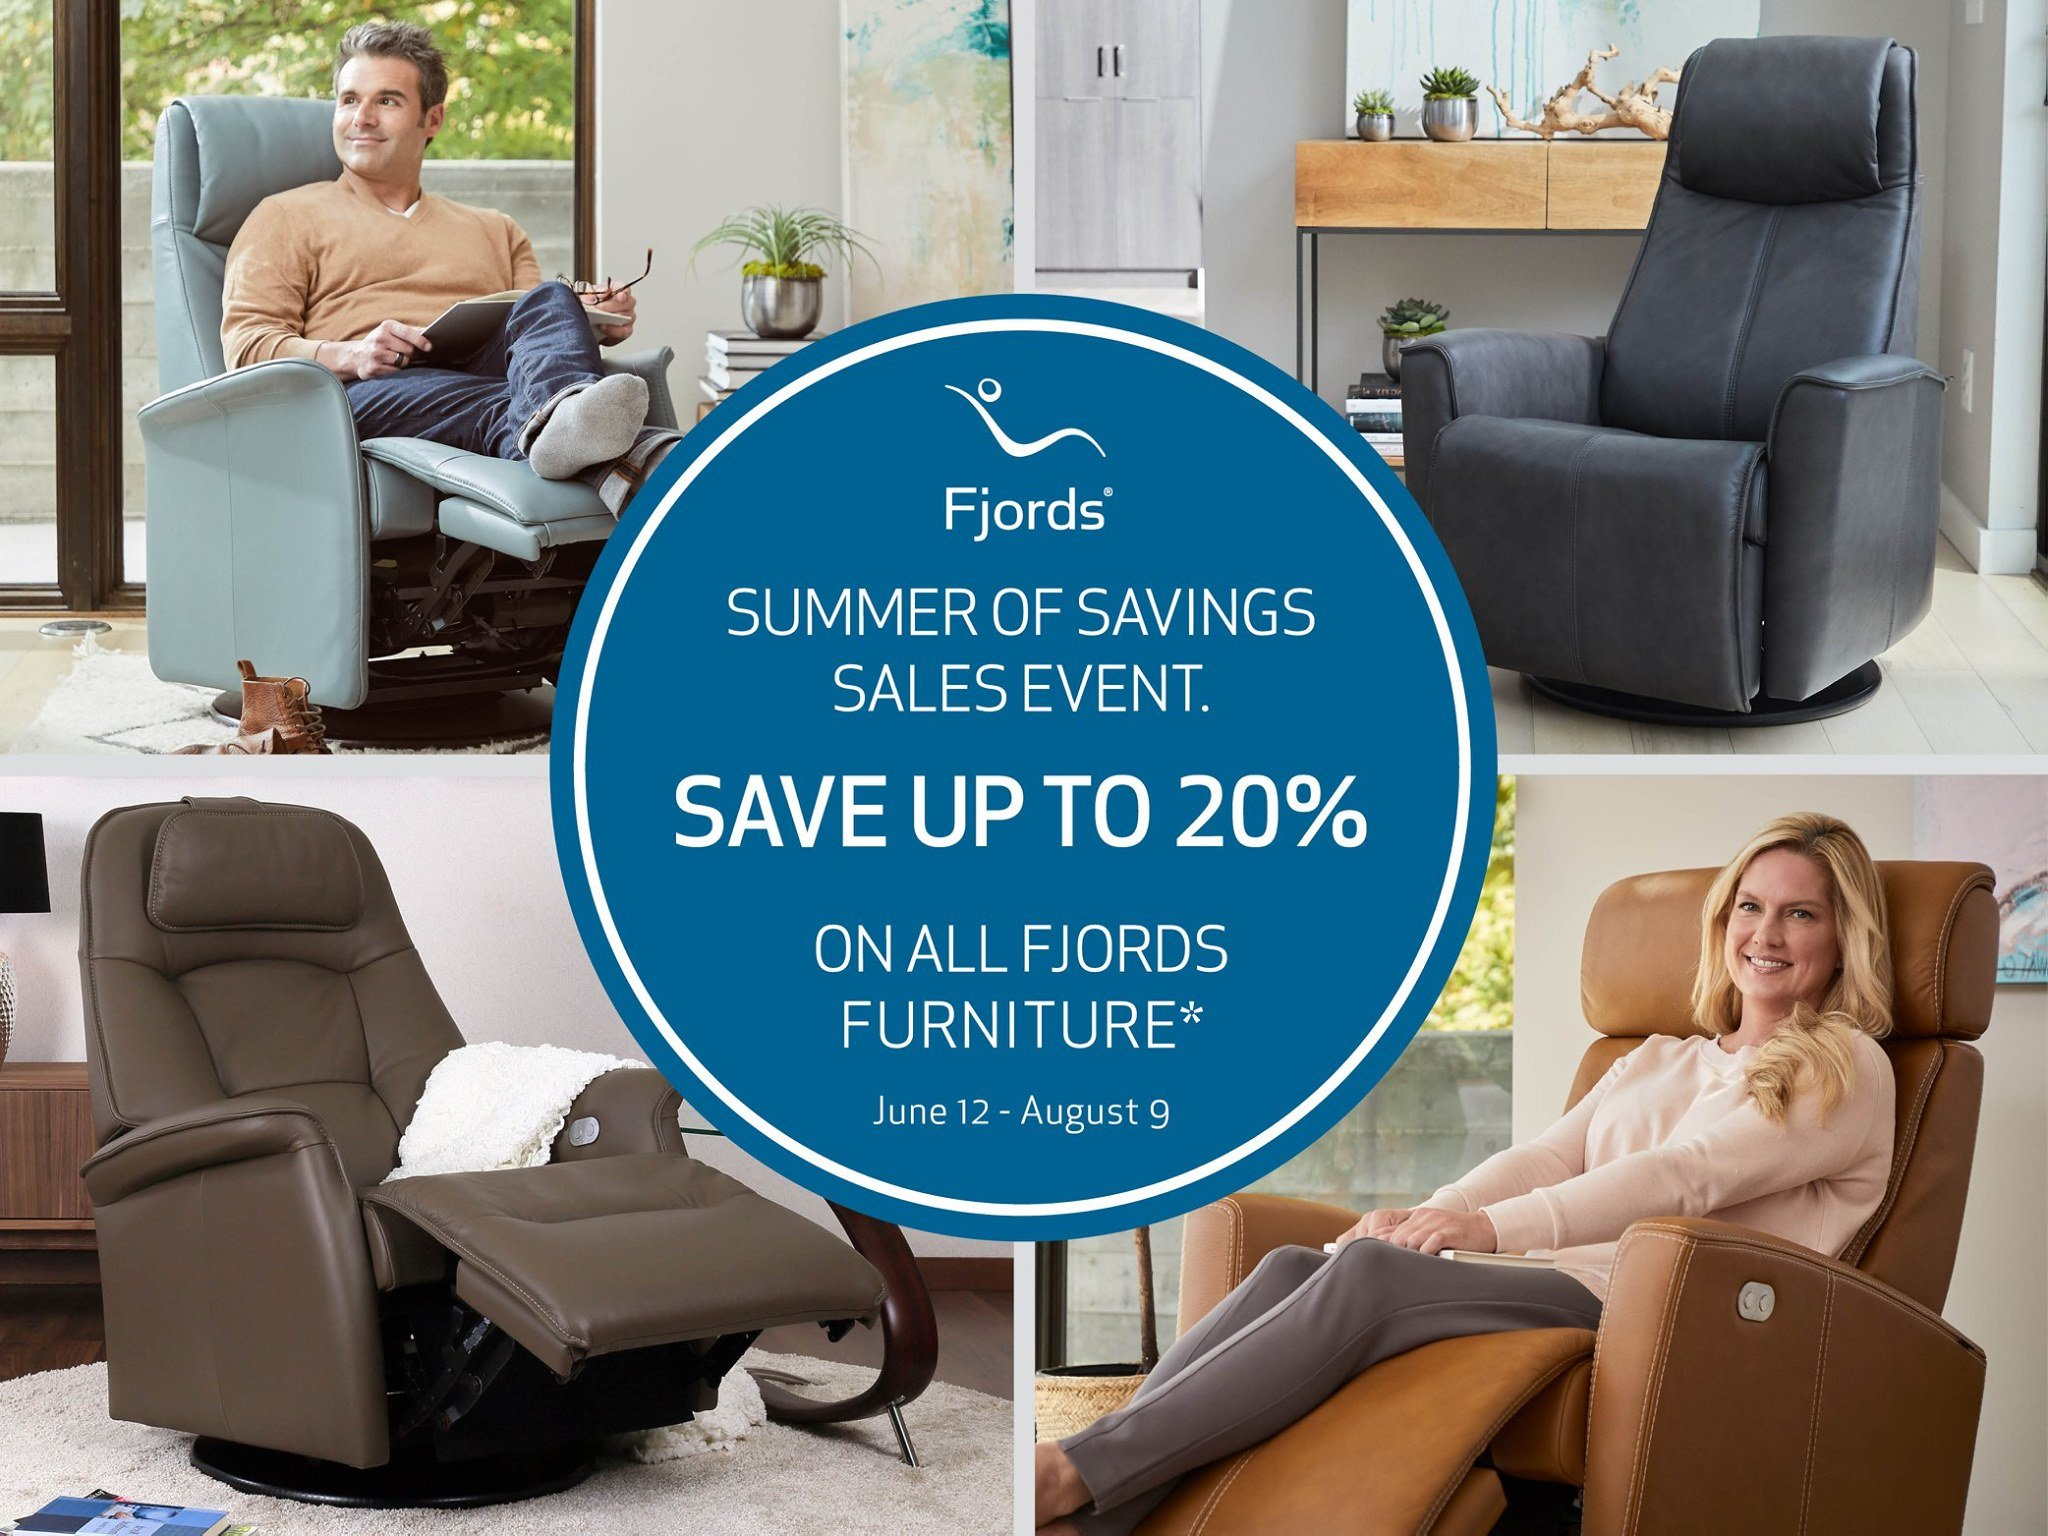 Fjords Summer Sale